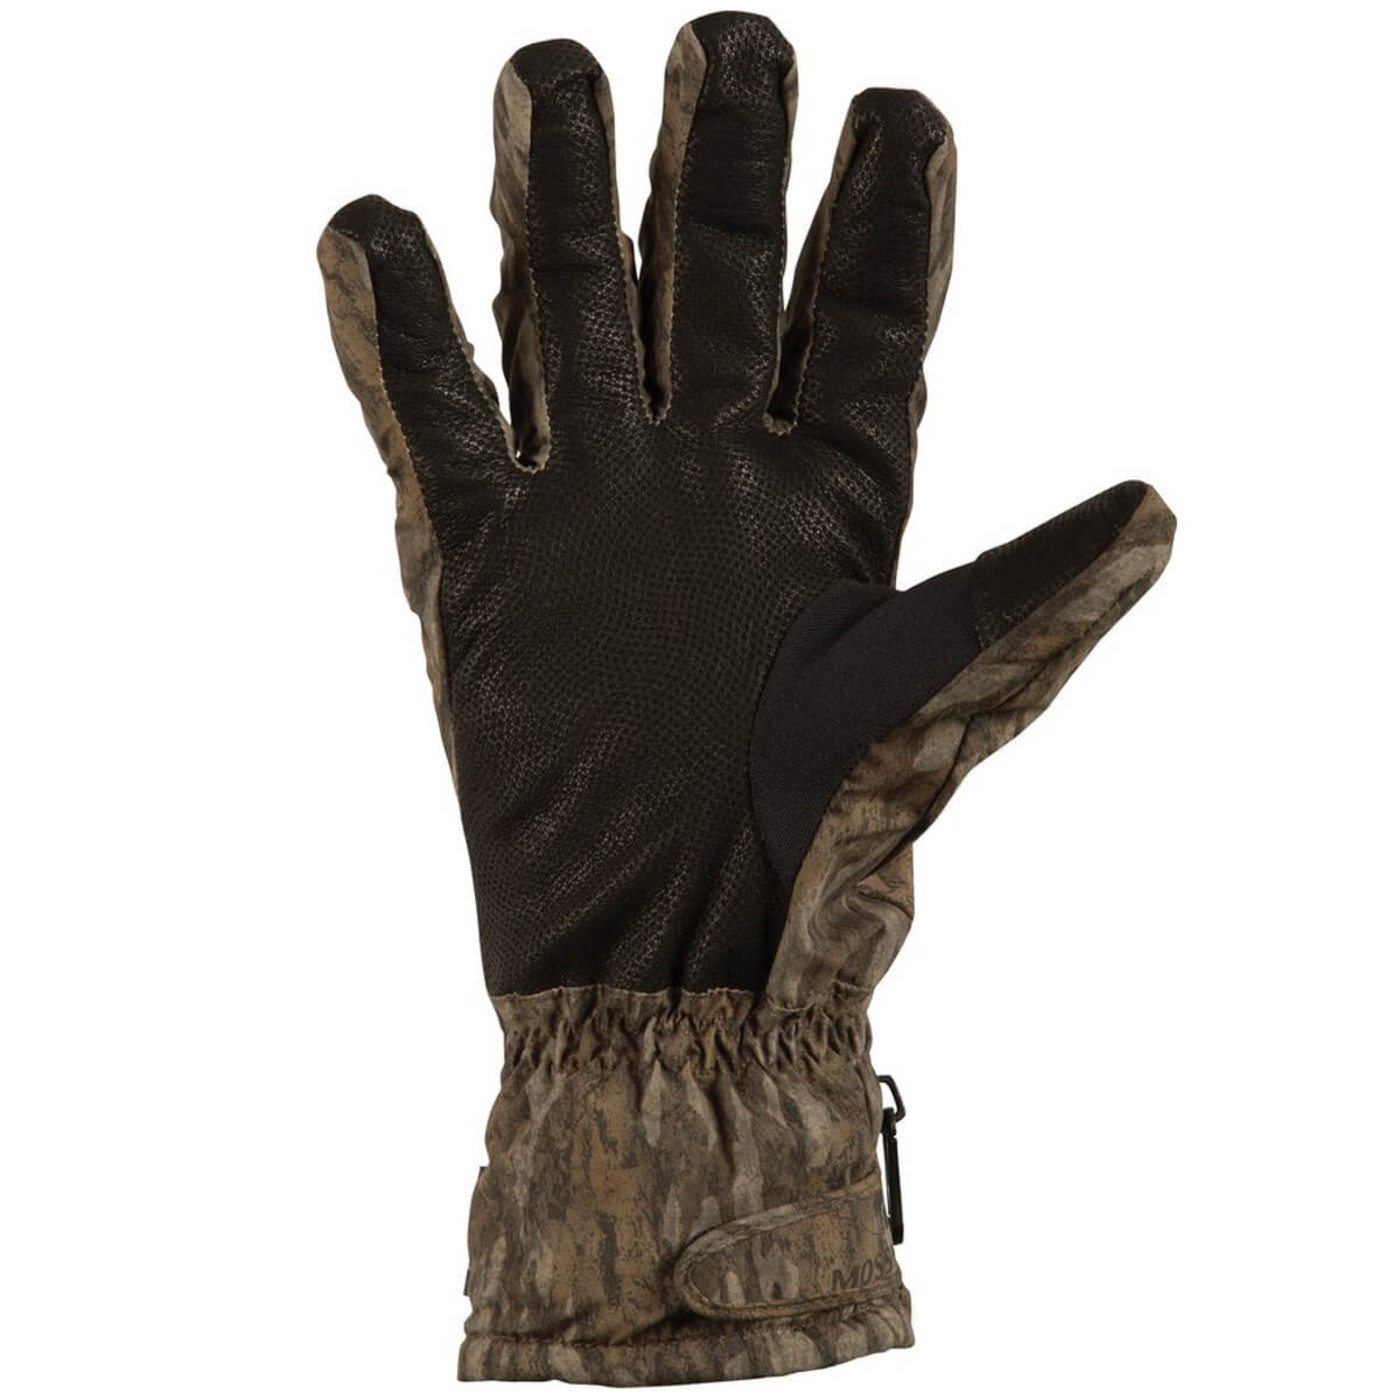 Drake LST Refuge Gore-Tex Glove in Mossy Oak Bottomland Color